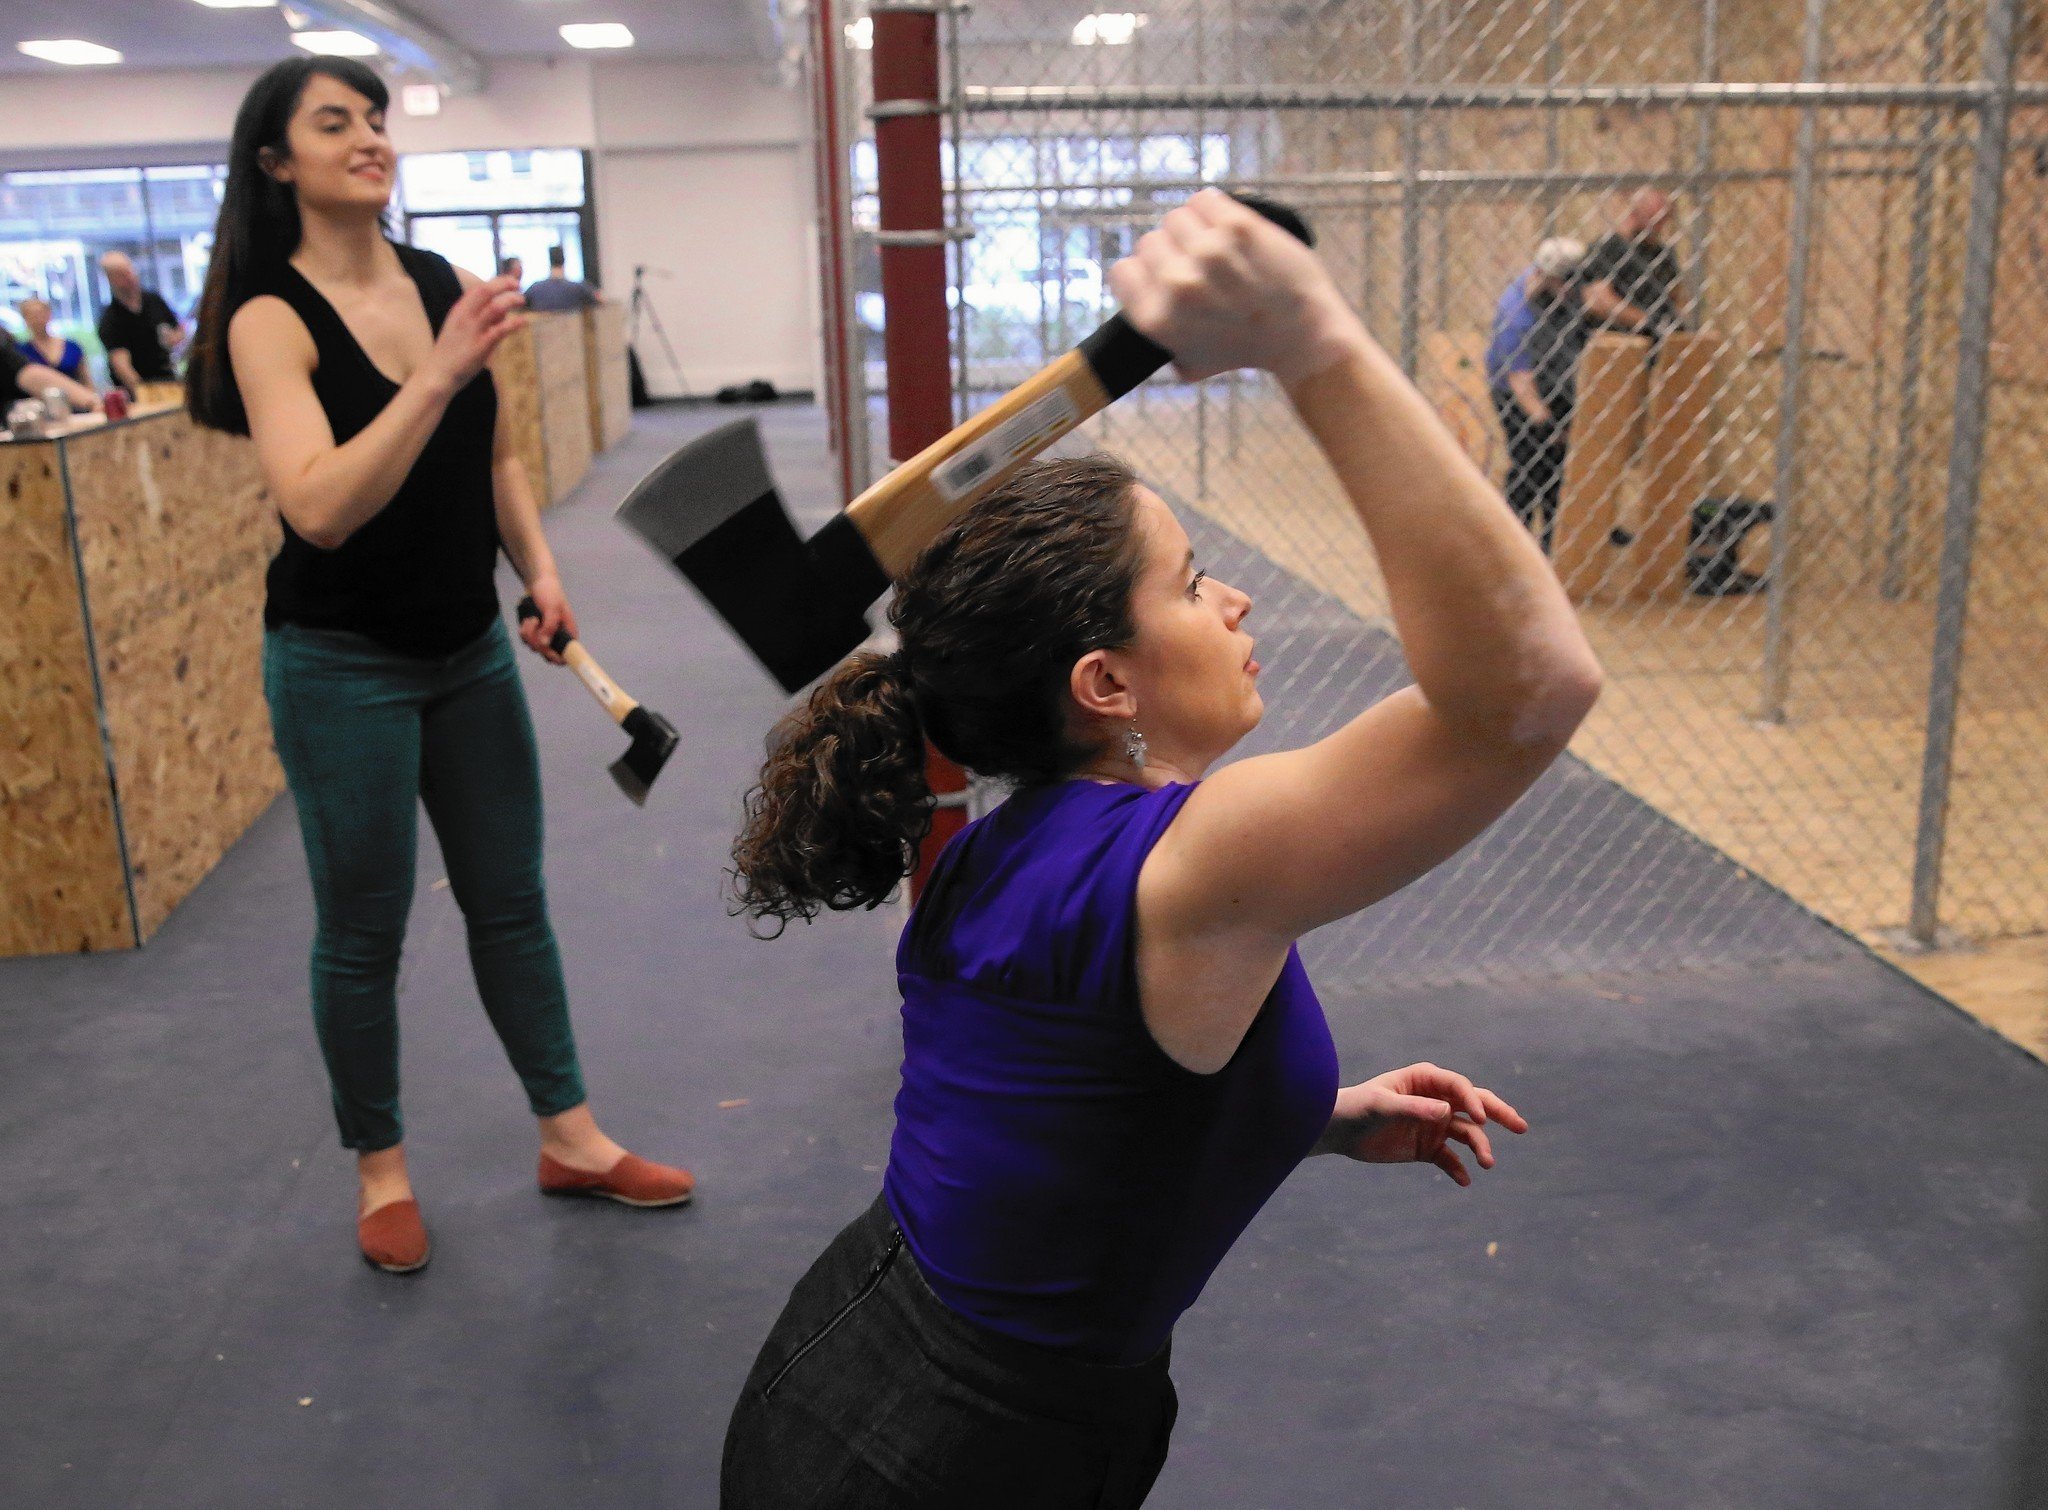 new ax throwing venue open in chicago chicago tribune